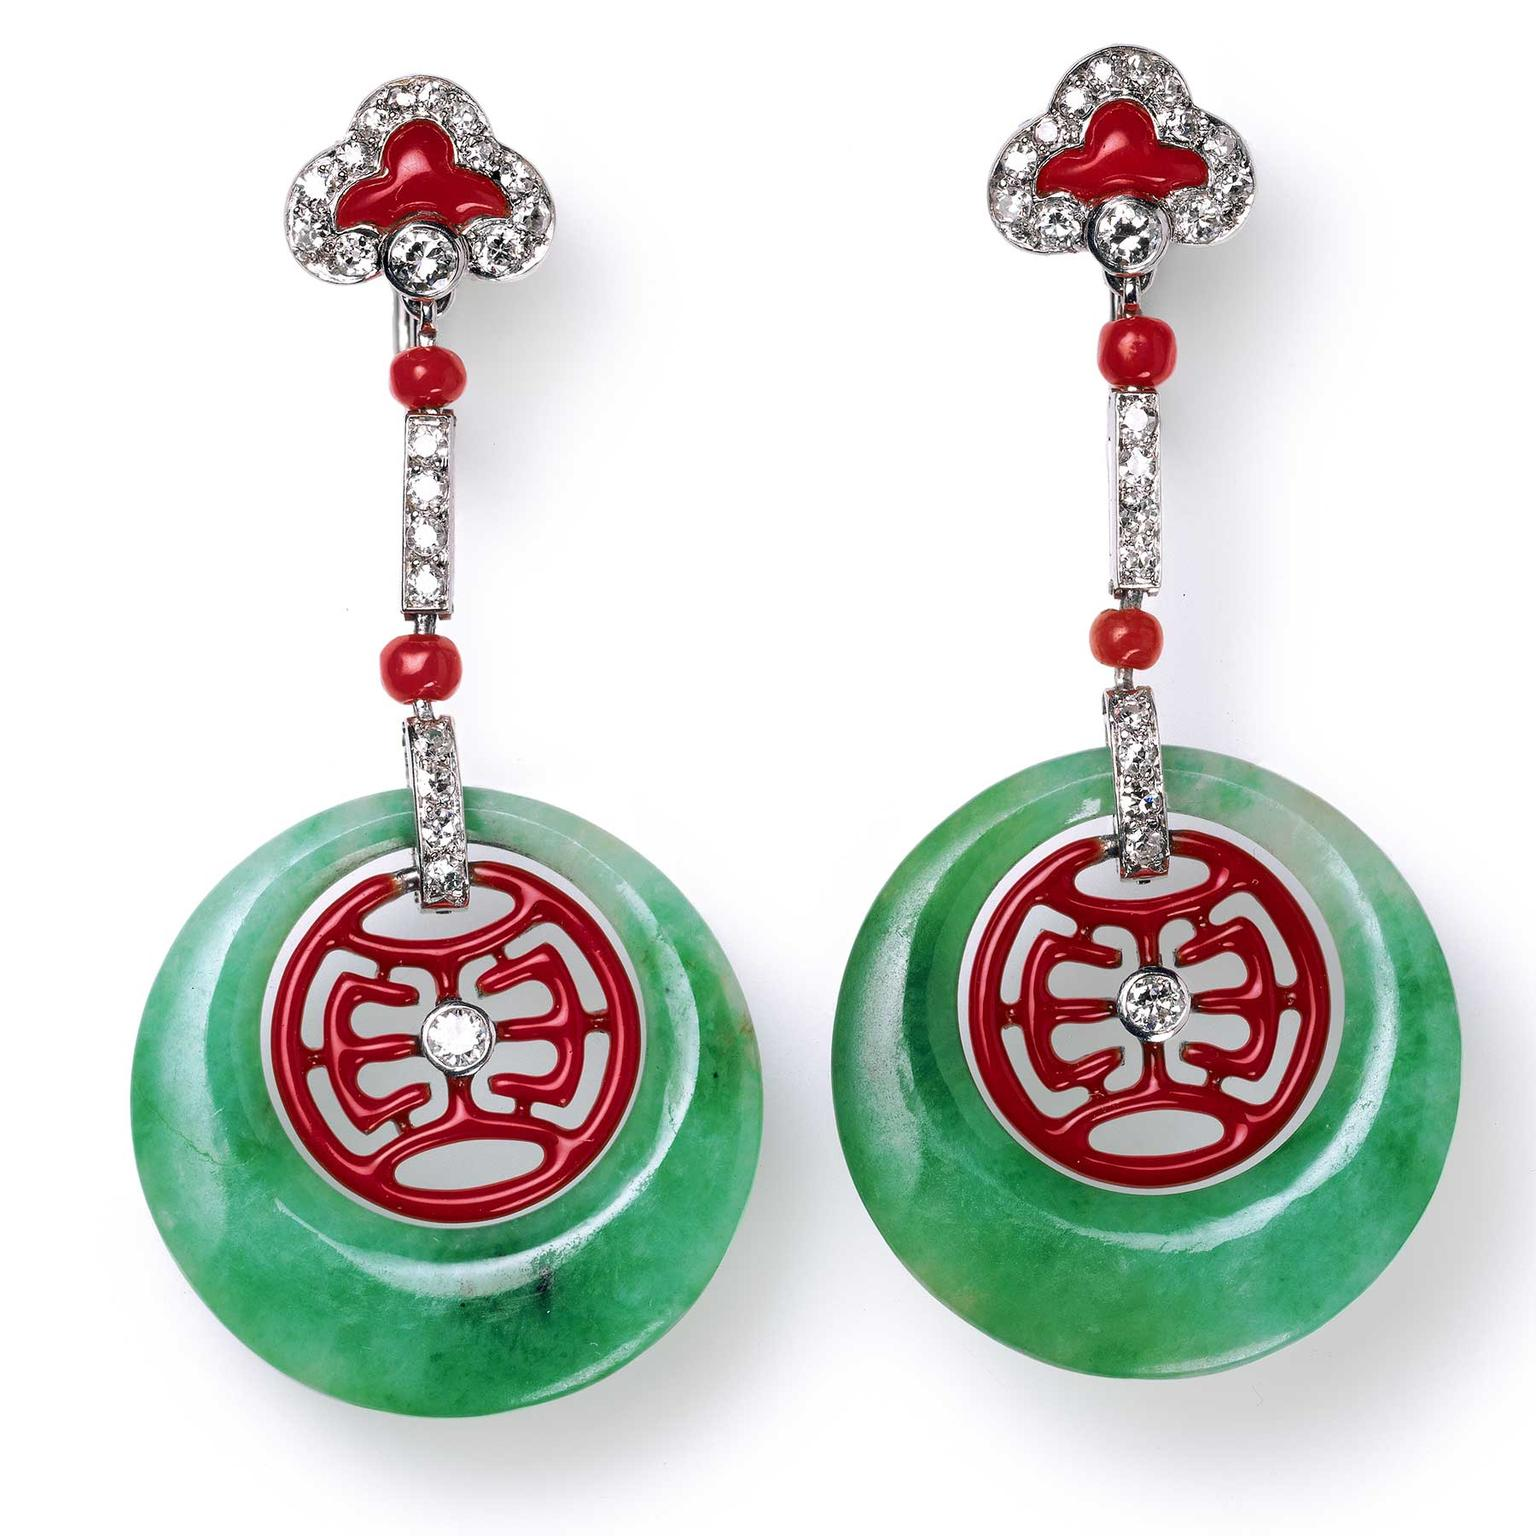 Cartier Collection jade and coral ear pendants